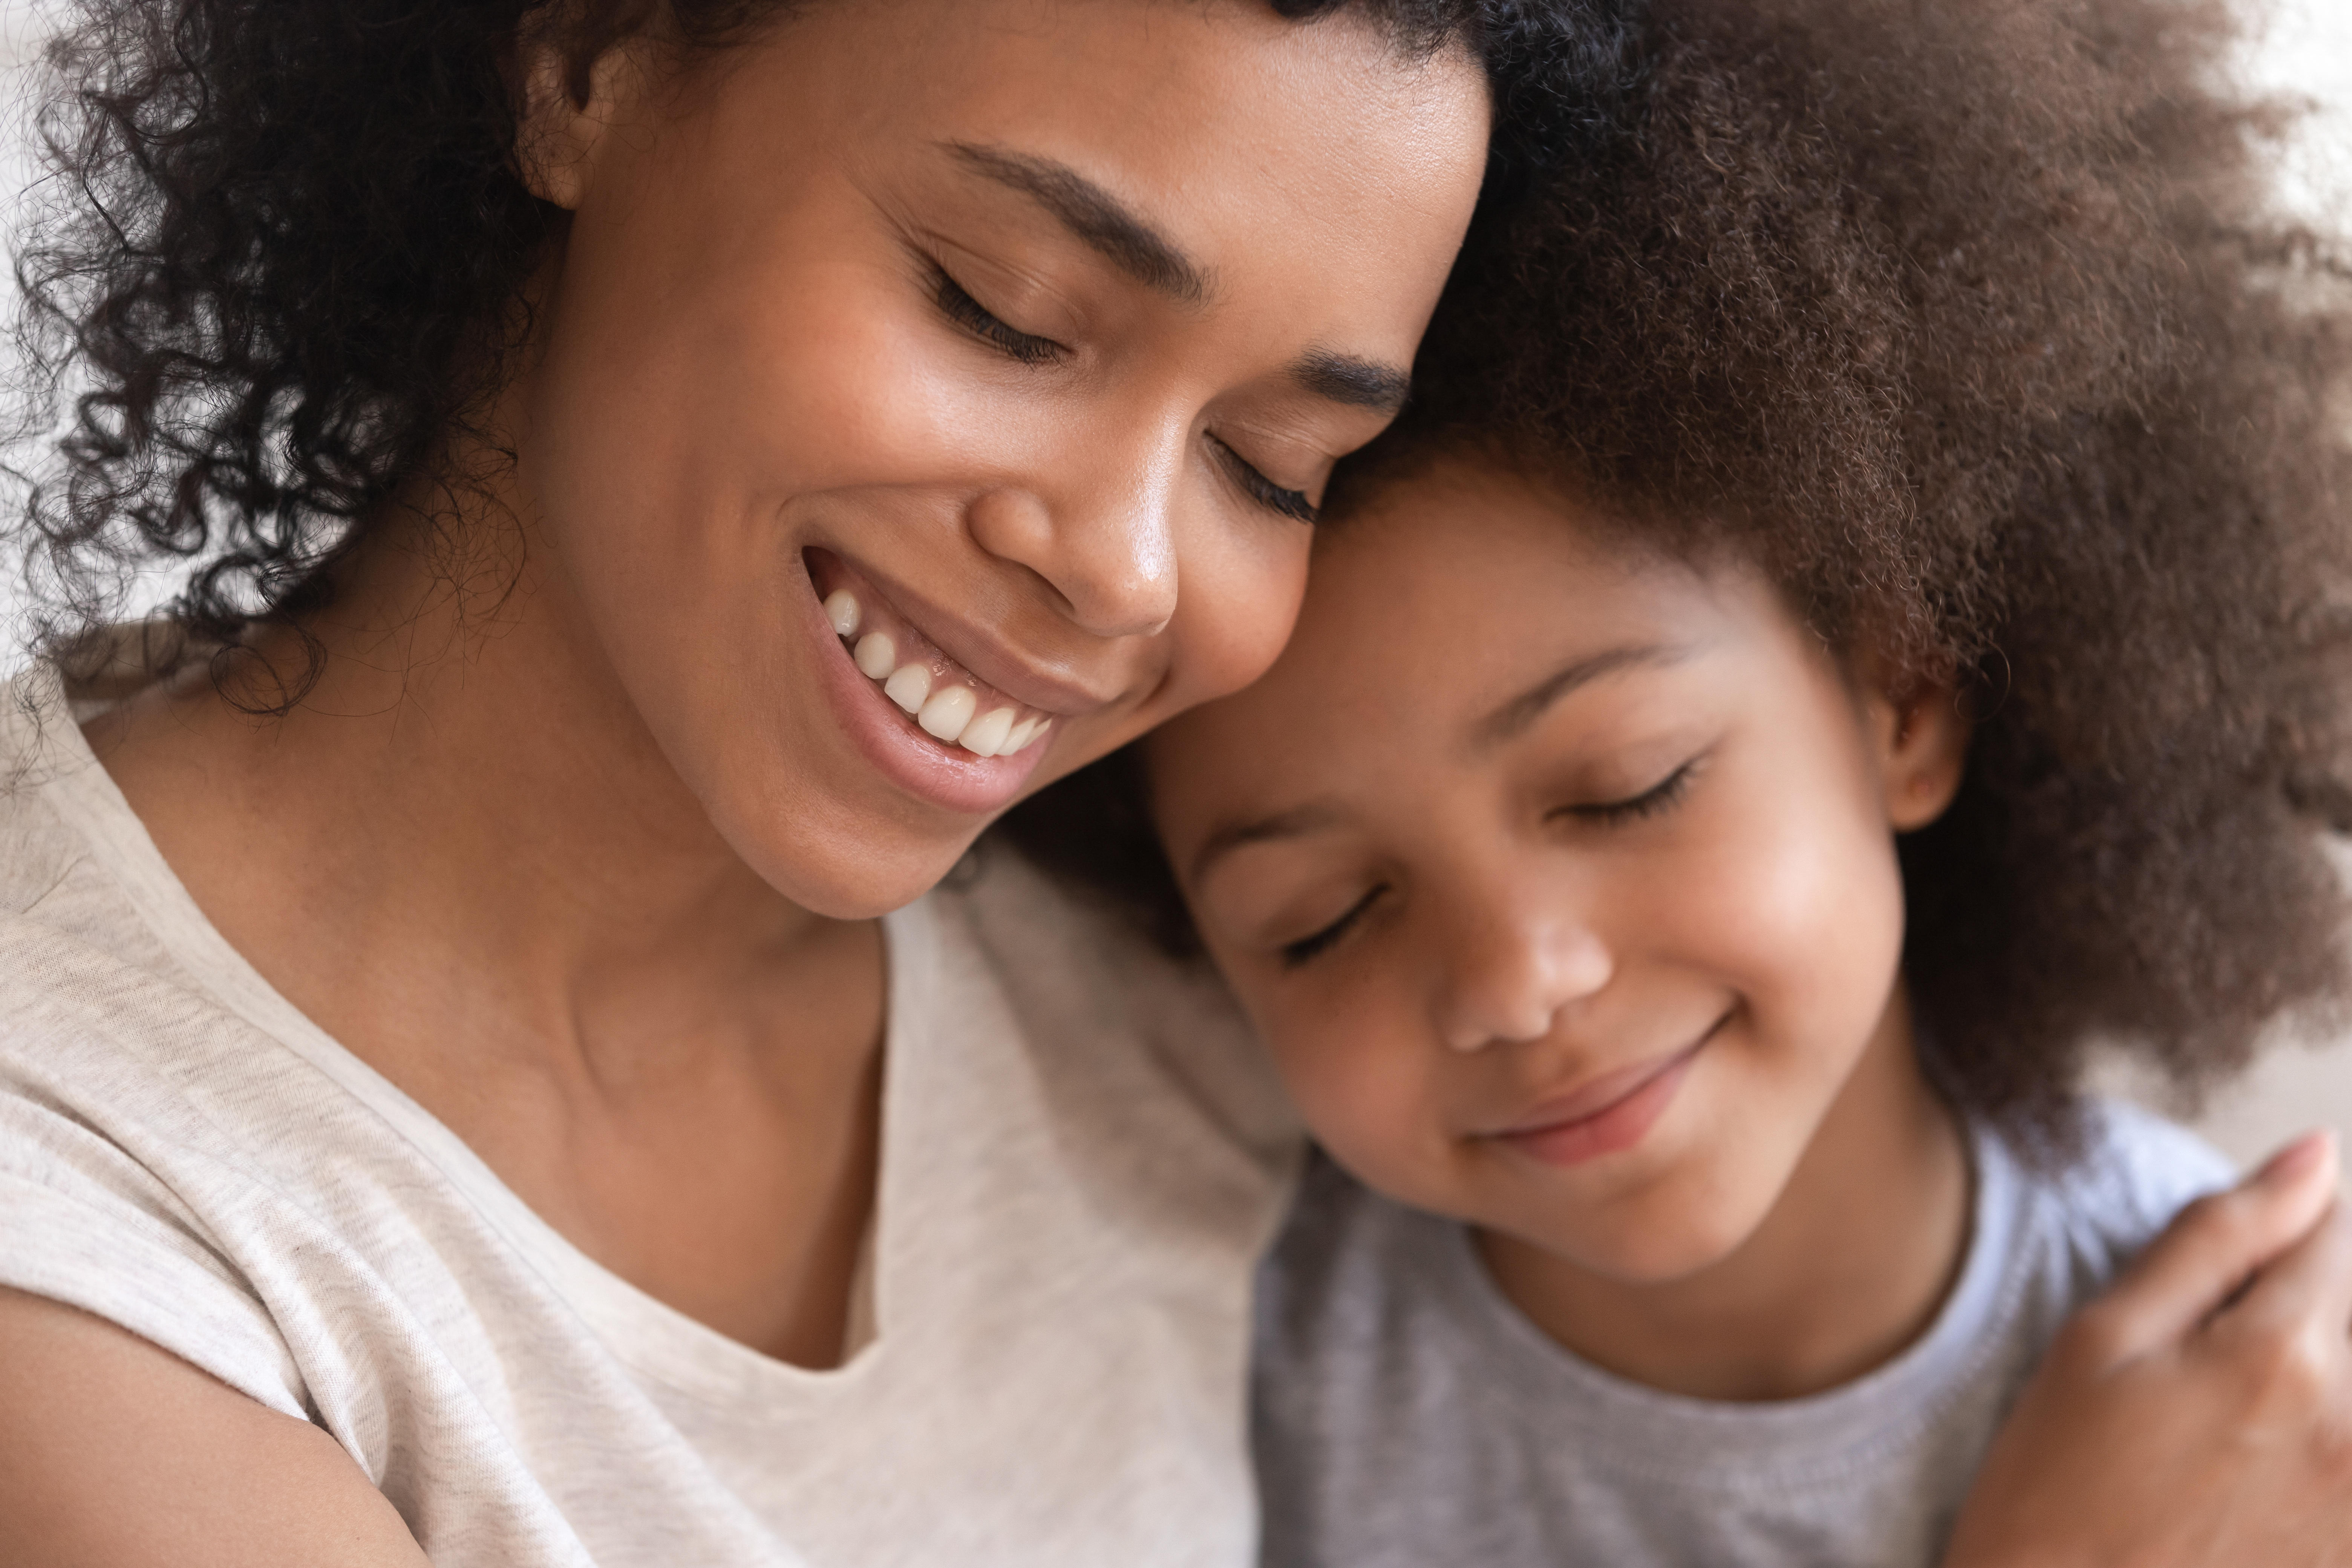 9 ways to teach young children to be kind, c9549678 34ac 4b40 abd4 51a6f90d912b%, 6-9, 4-5%